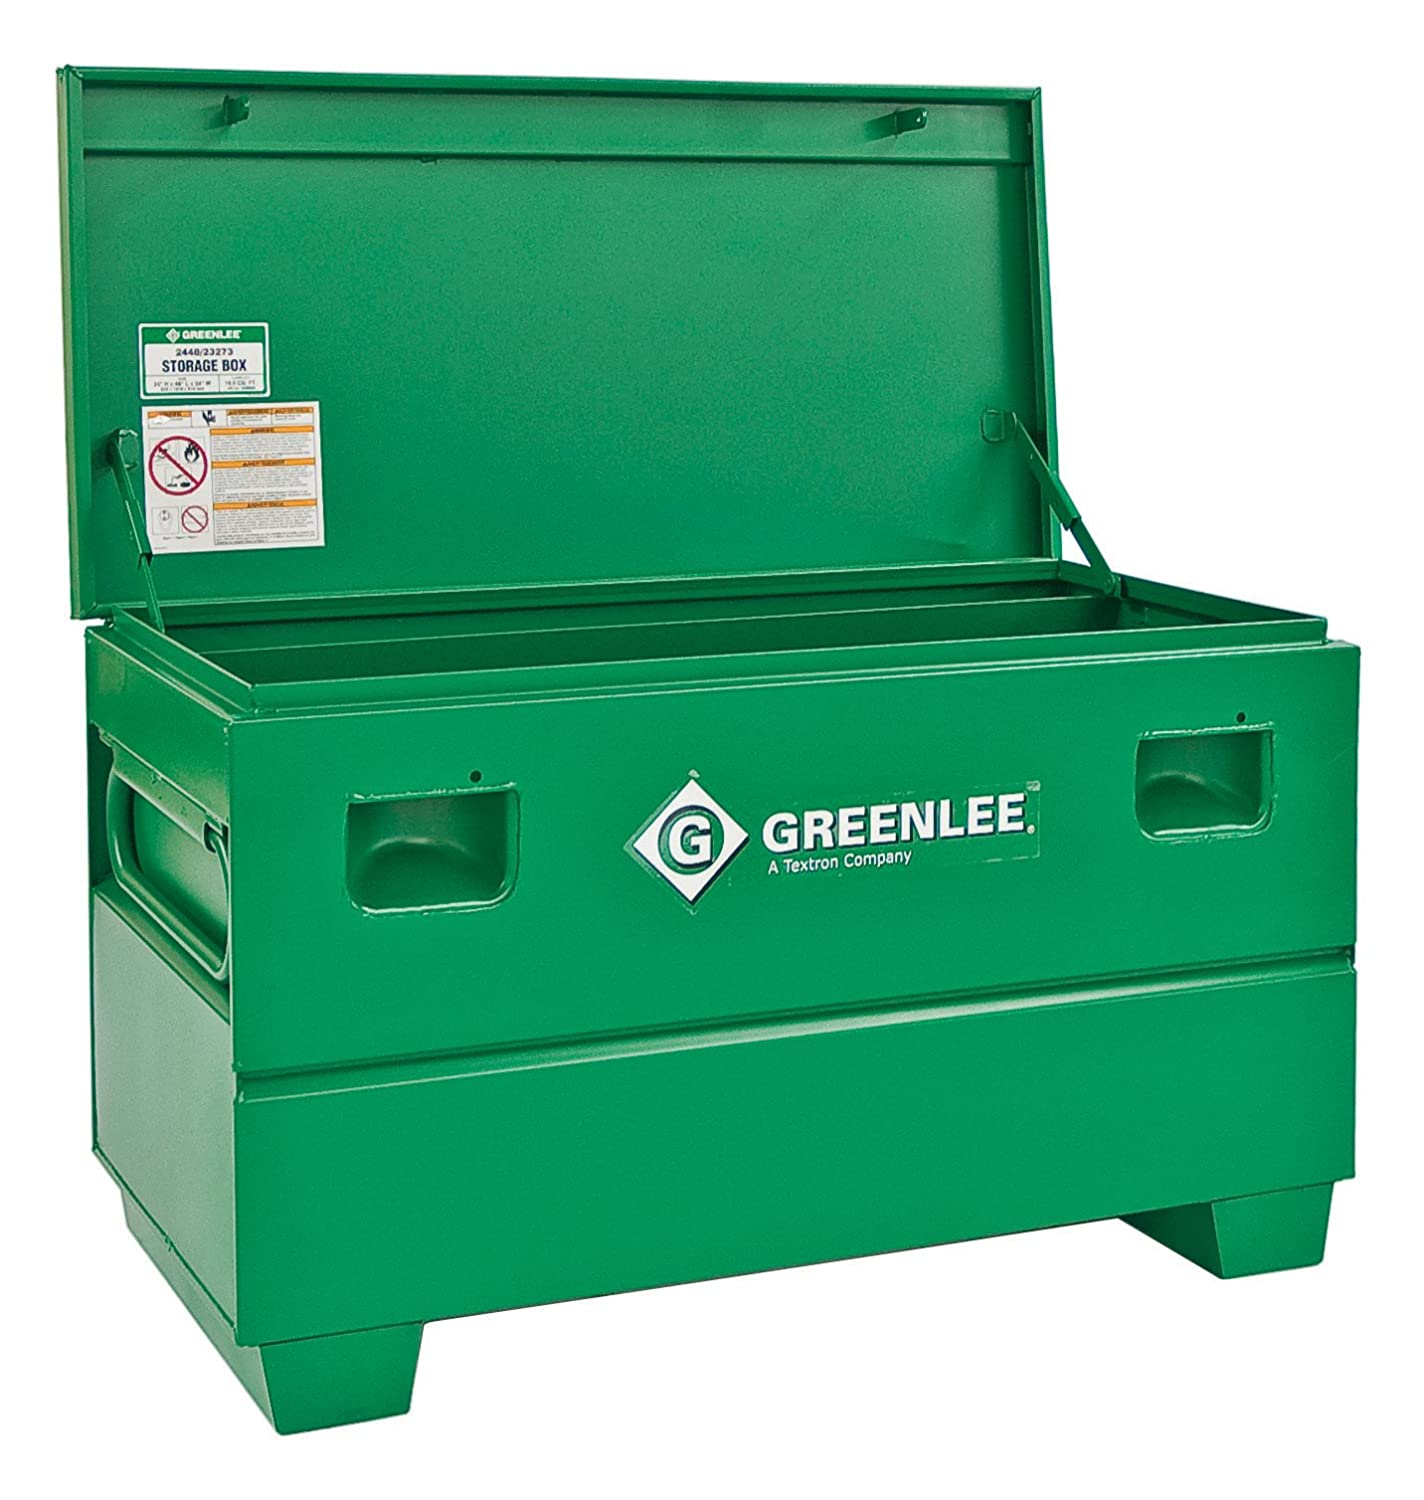 Amazon.com: Greenlee 2448 Storage Chest, 48 Inch By 25 Inch By 24 Inch:  Home Improvement